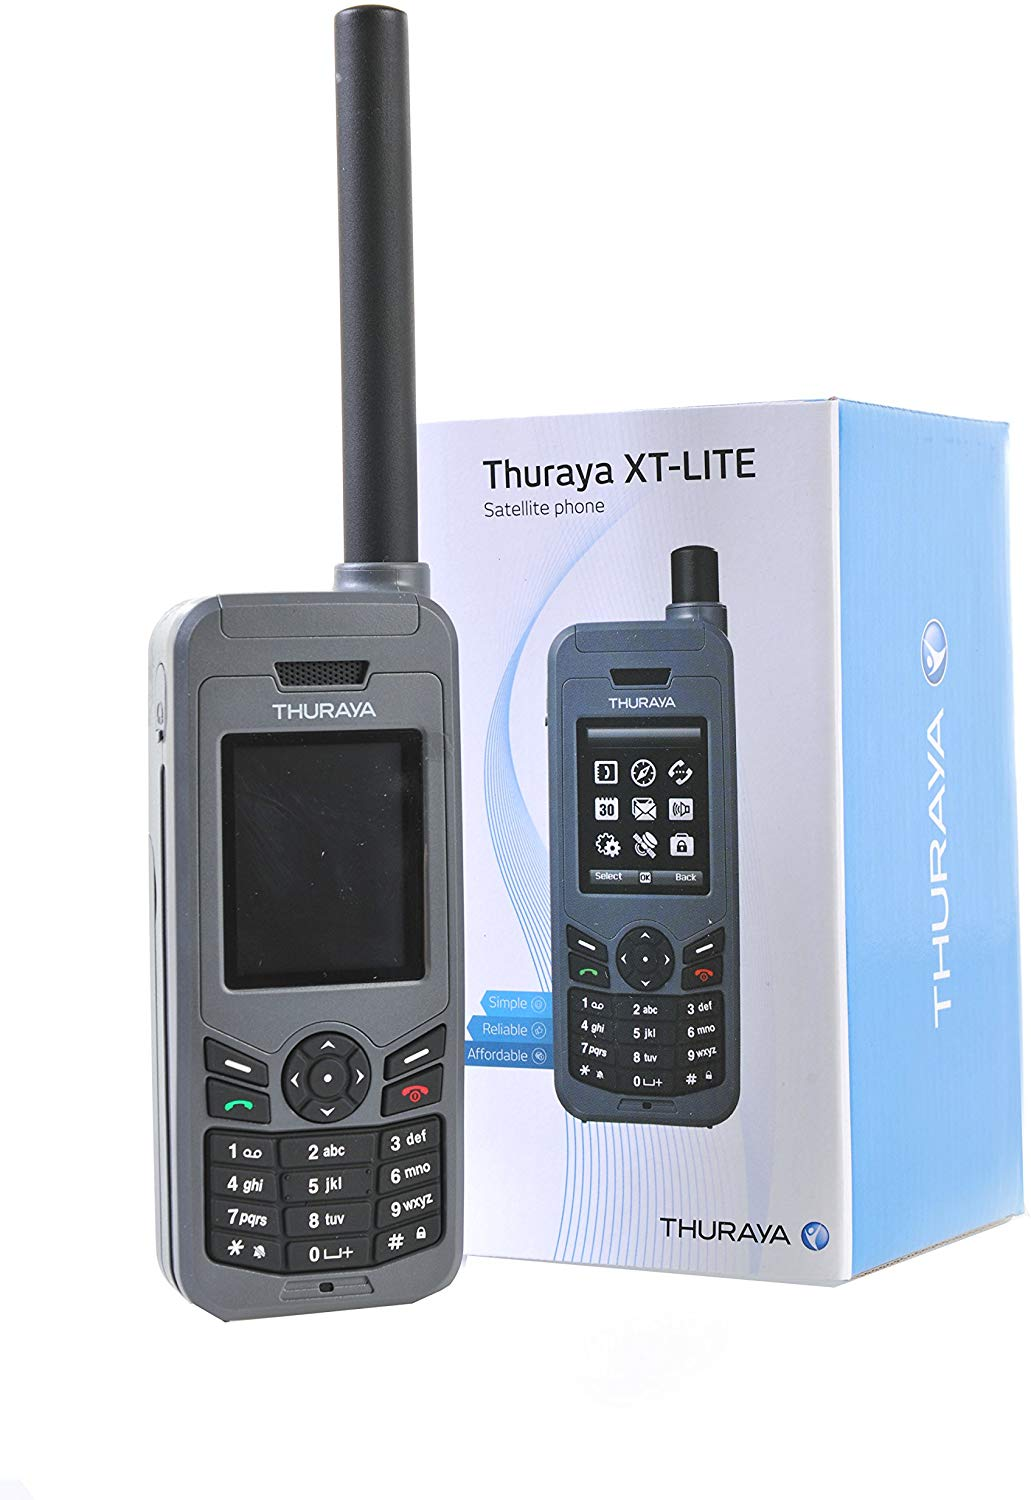 5 Best Satellite Phone for Backpacking